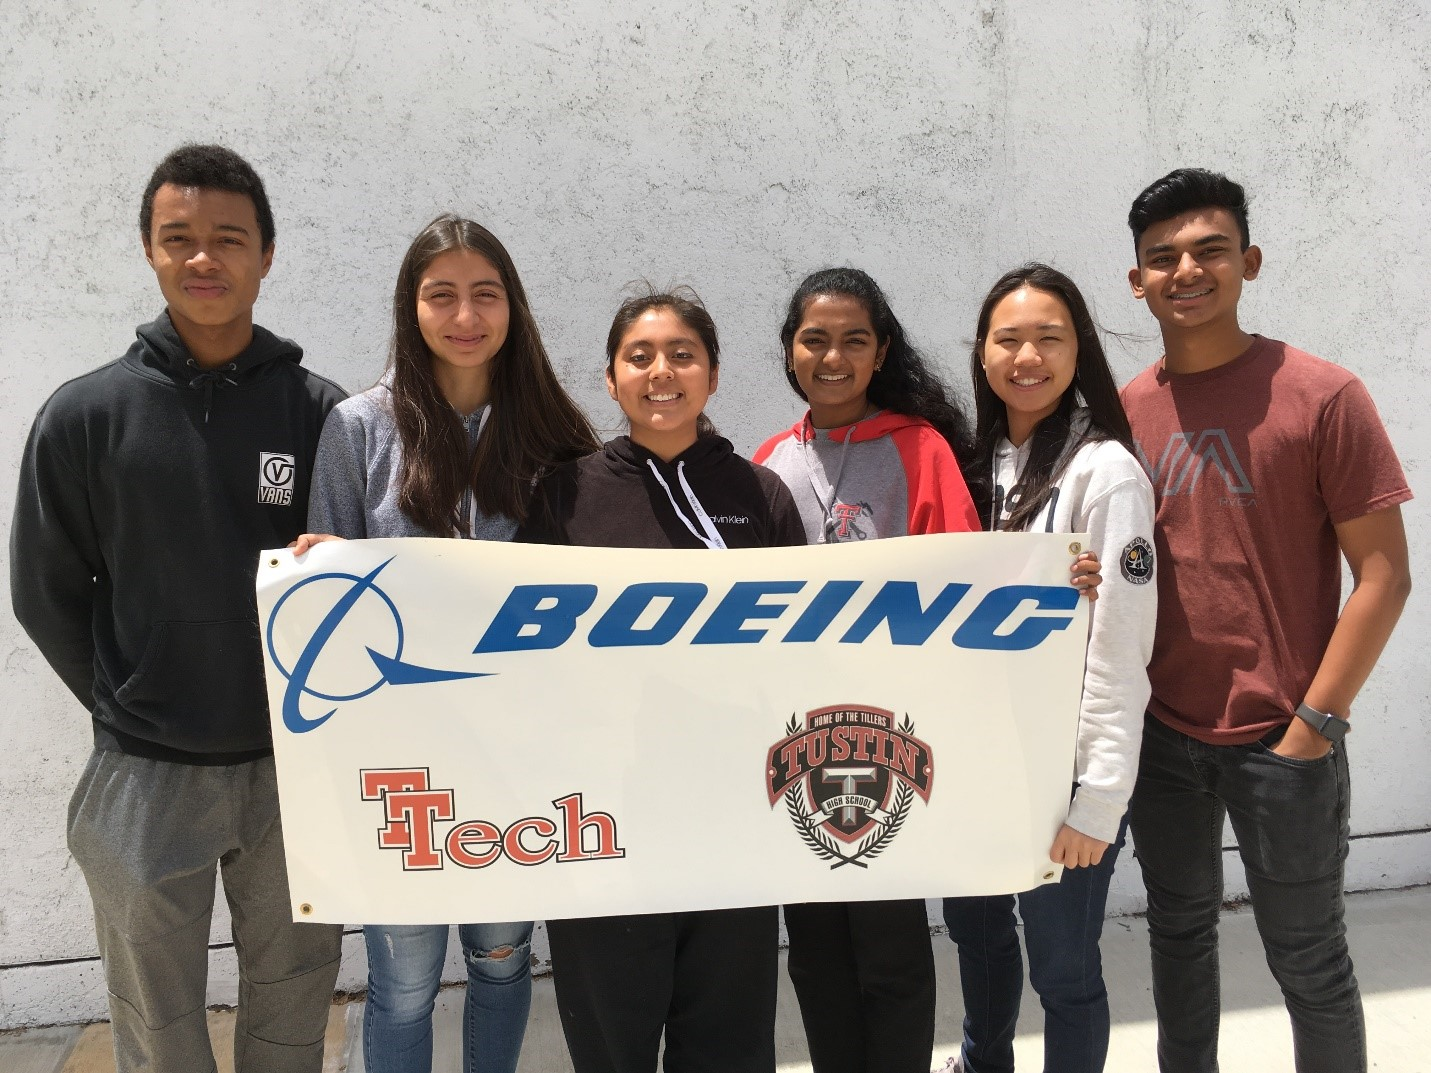 Six TUSD students holding a Boeing T-Tech Banner